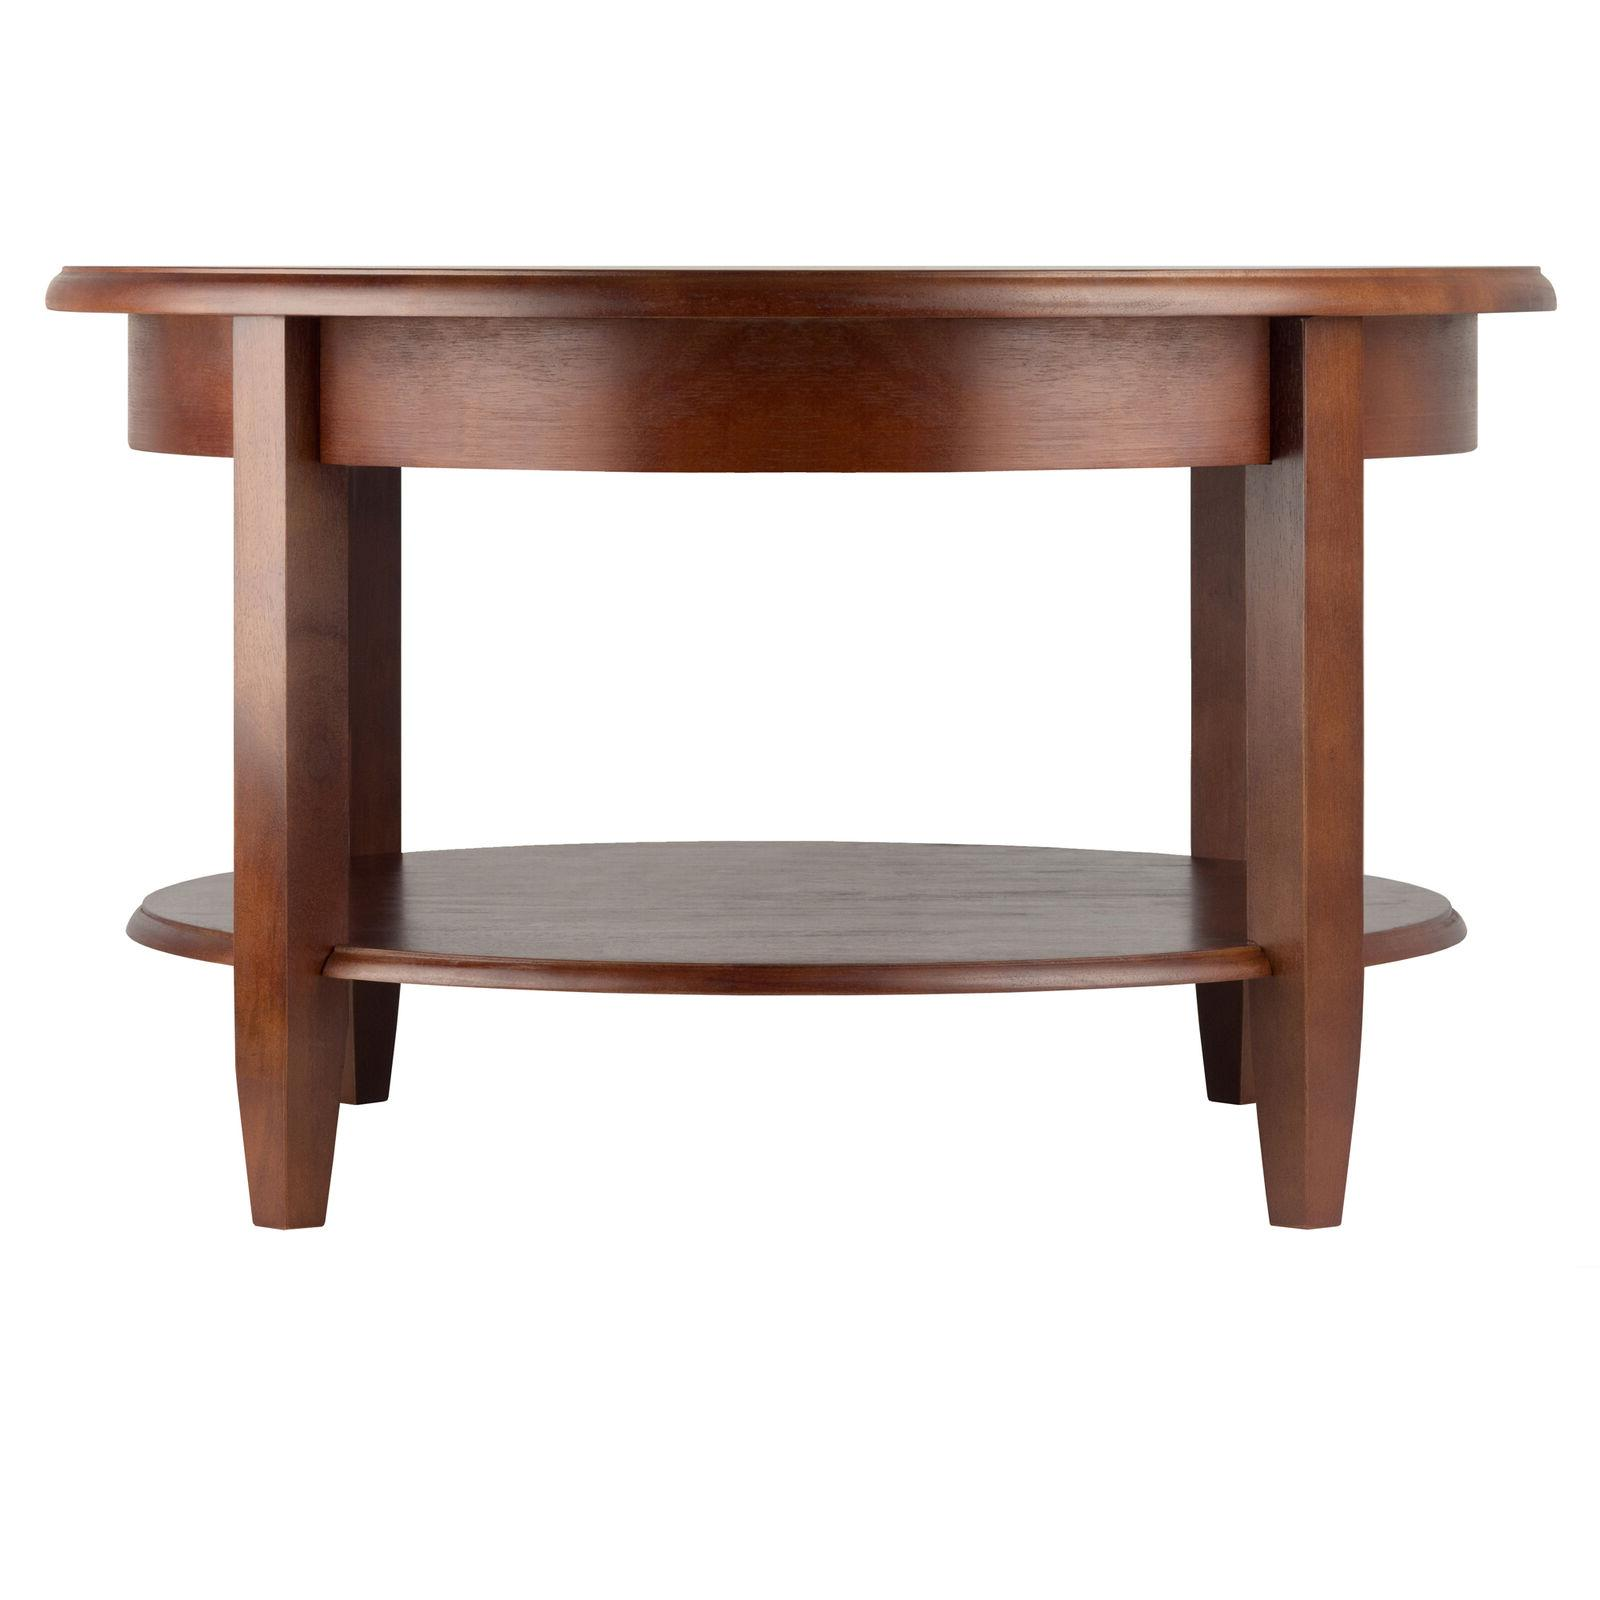 Winsome Wood Concord Round Coffee Table Walnut Finish Drawer